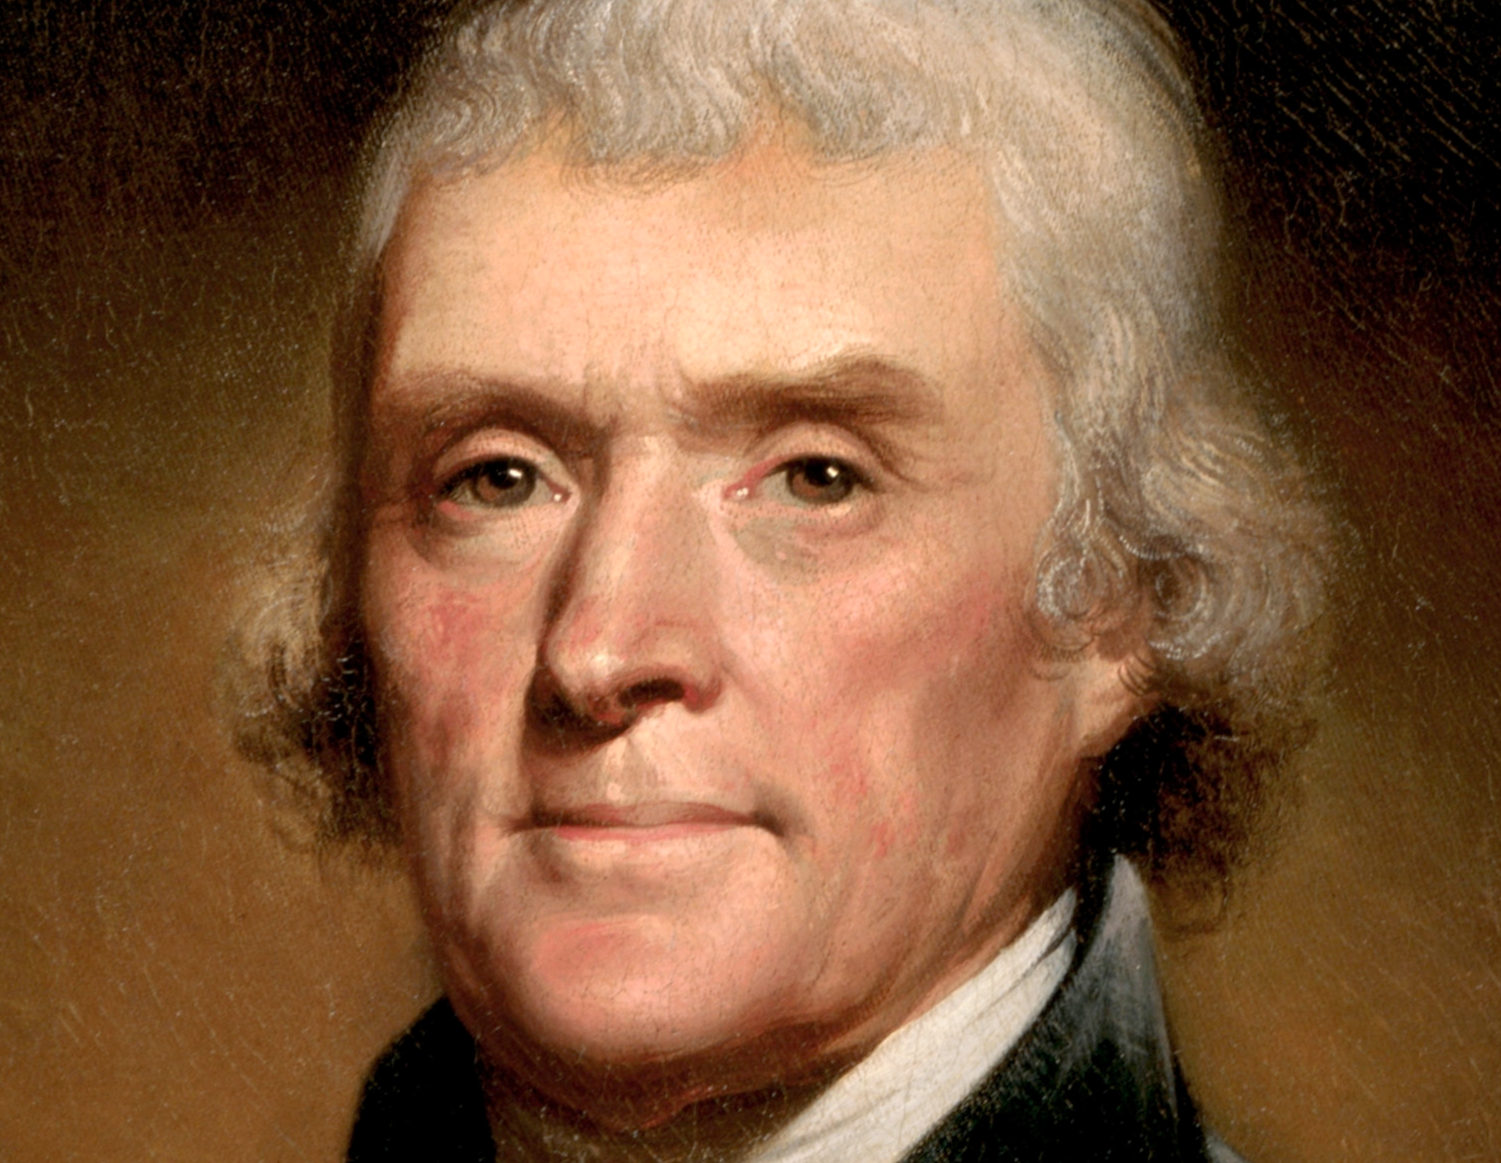 02_thomas_jefferson_3x4.jpg